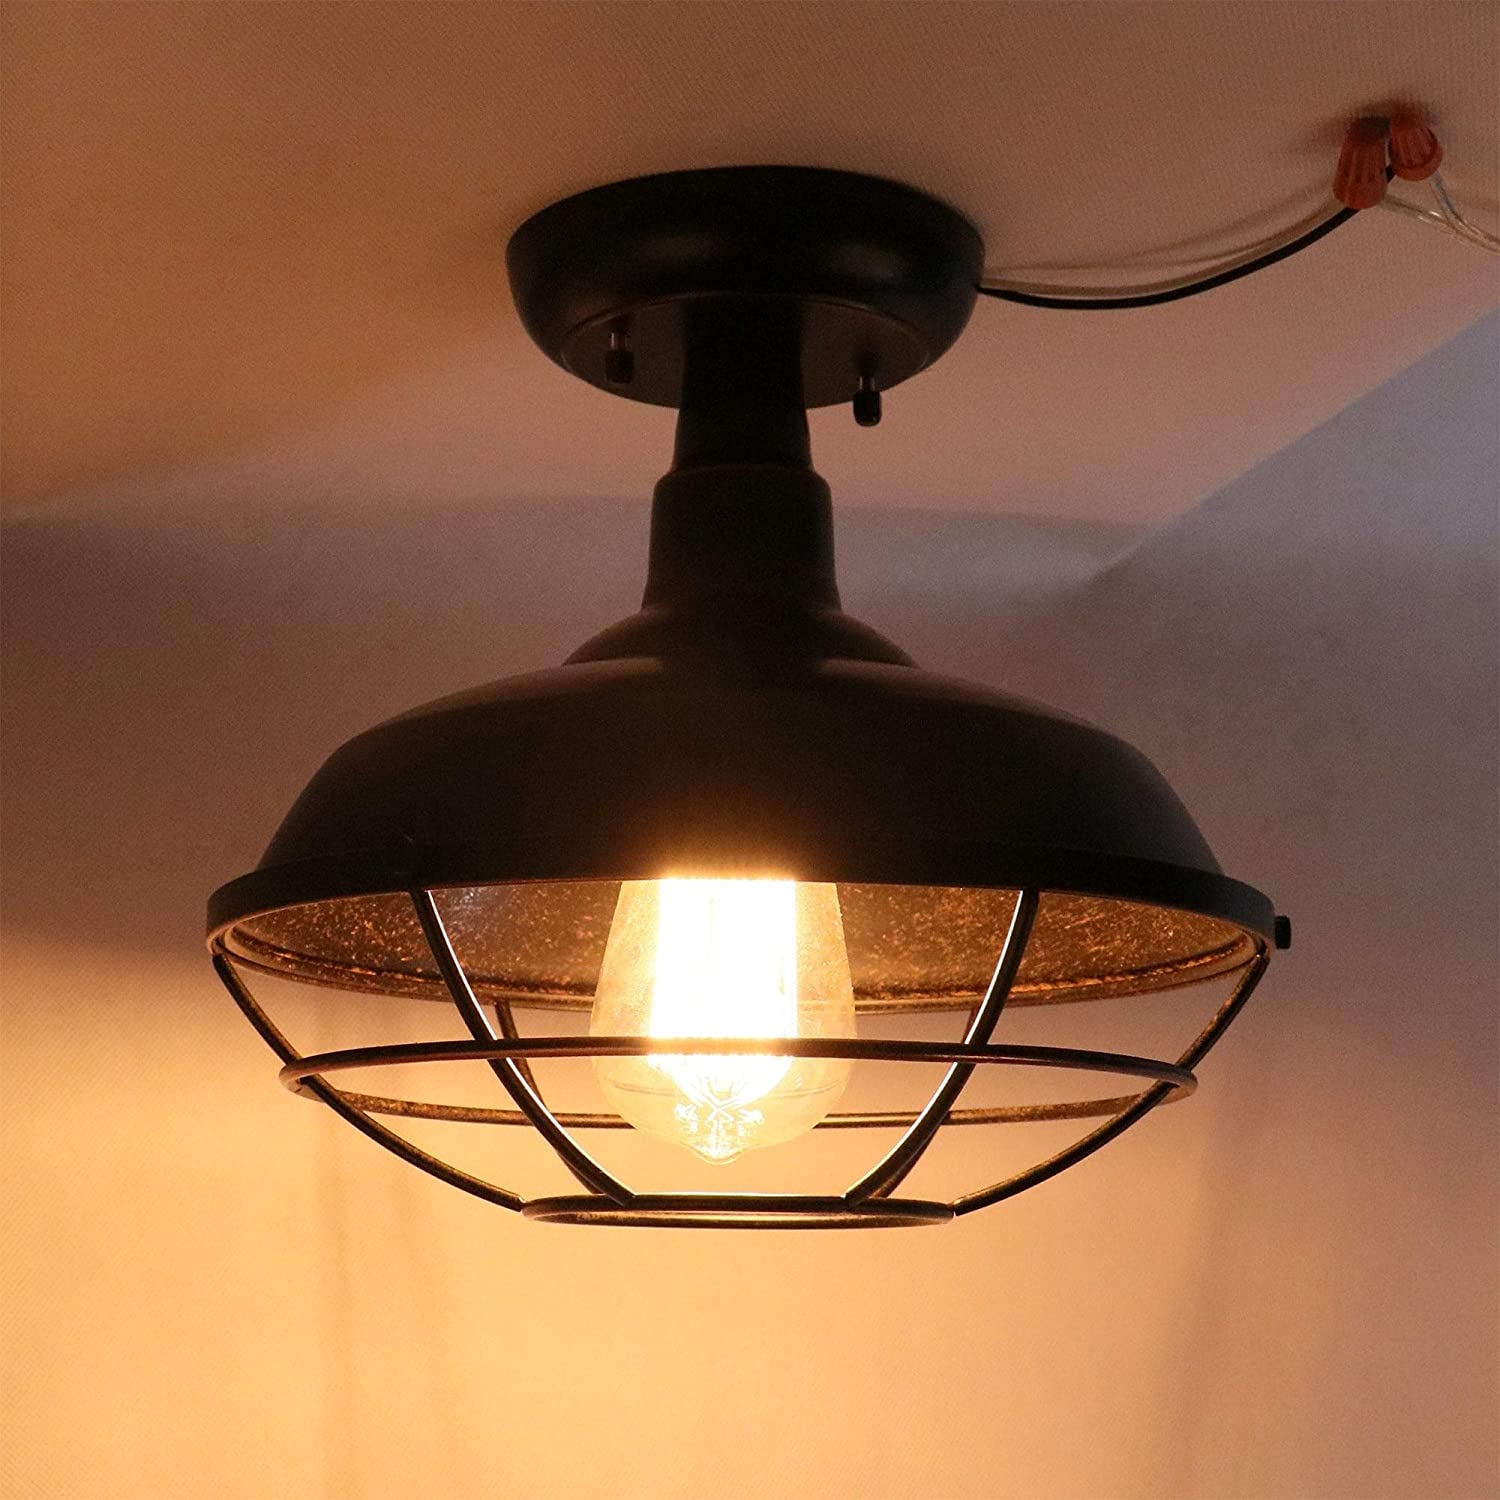 1 Light Ceiling Light Oil Rubbed Bronze Traditional Metal Dimmable